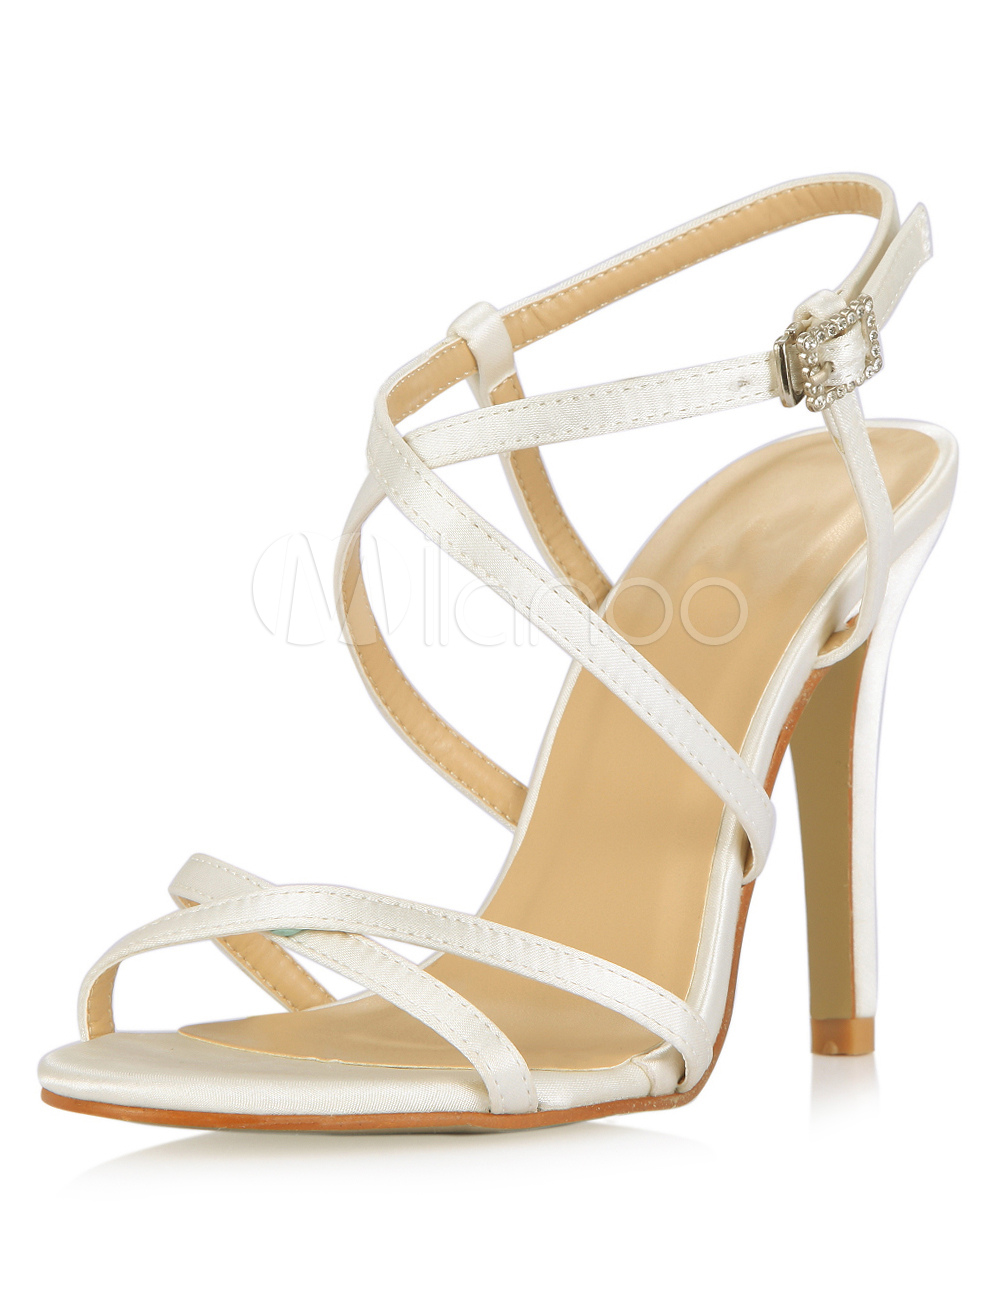 Ivory Stiletto Heel Bride's Sandals With Stripes